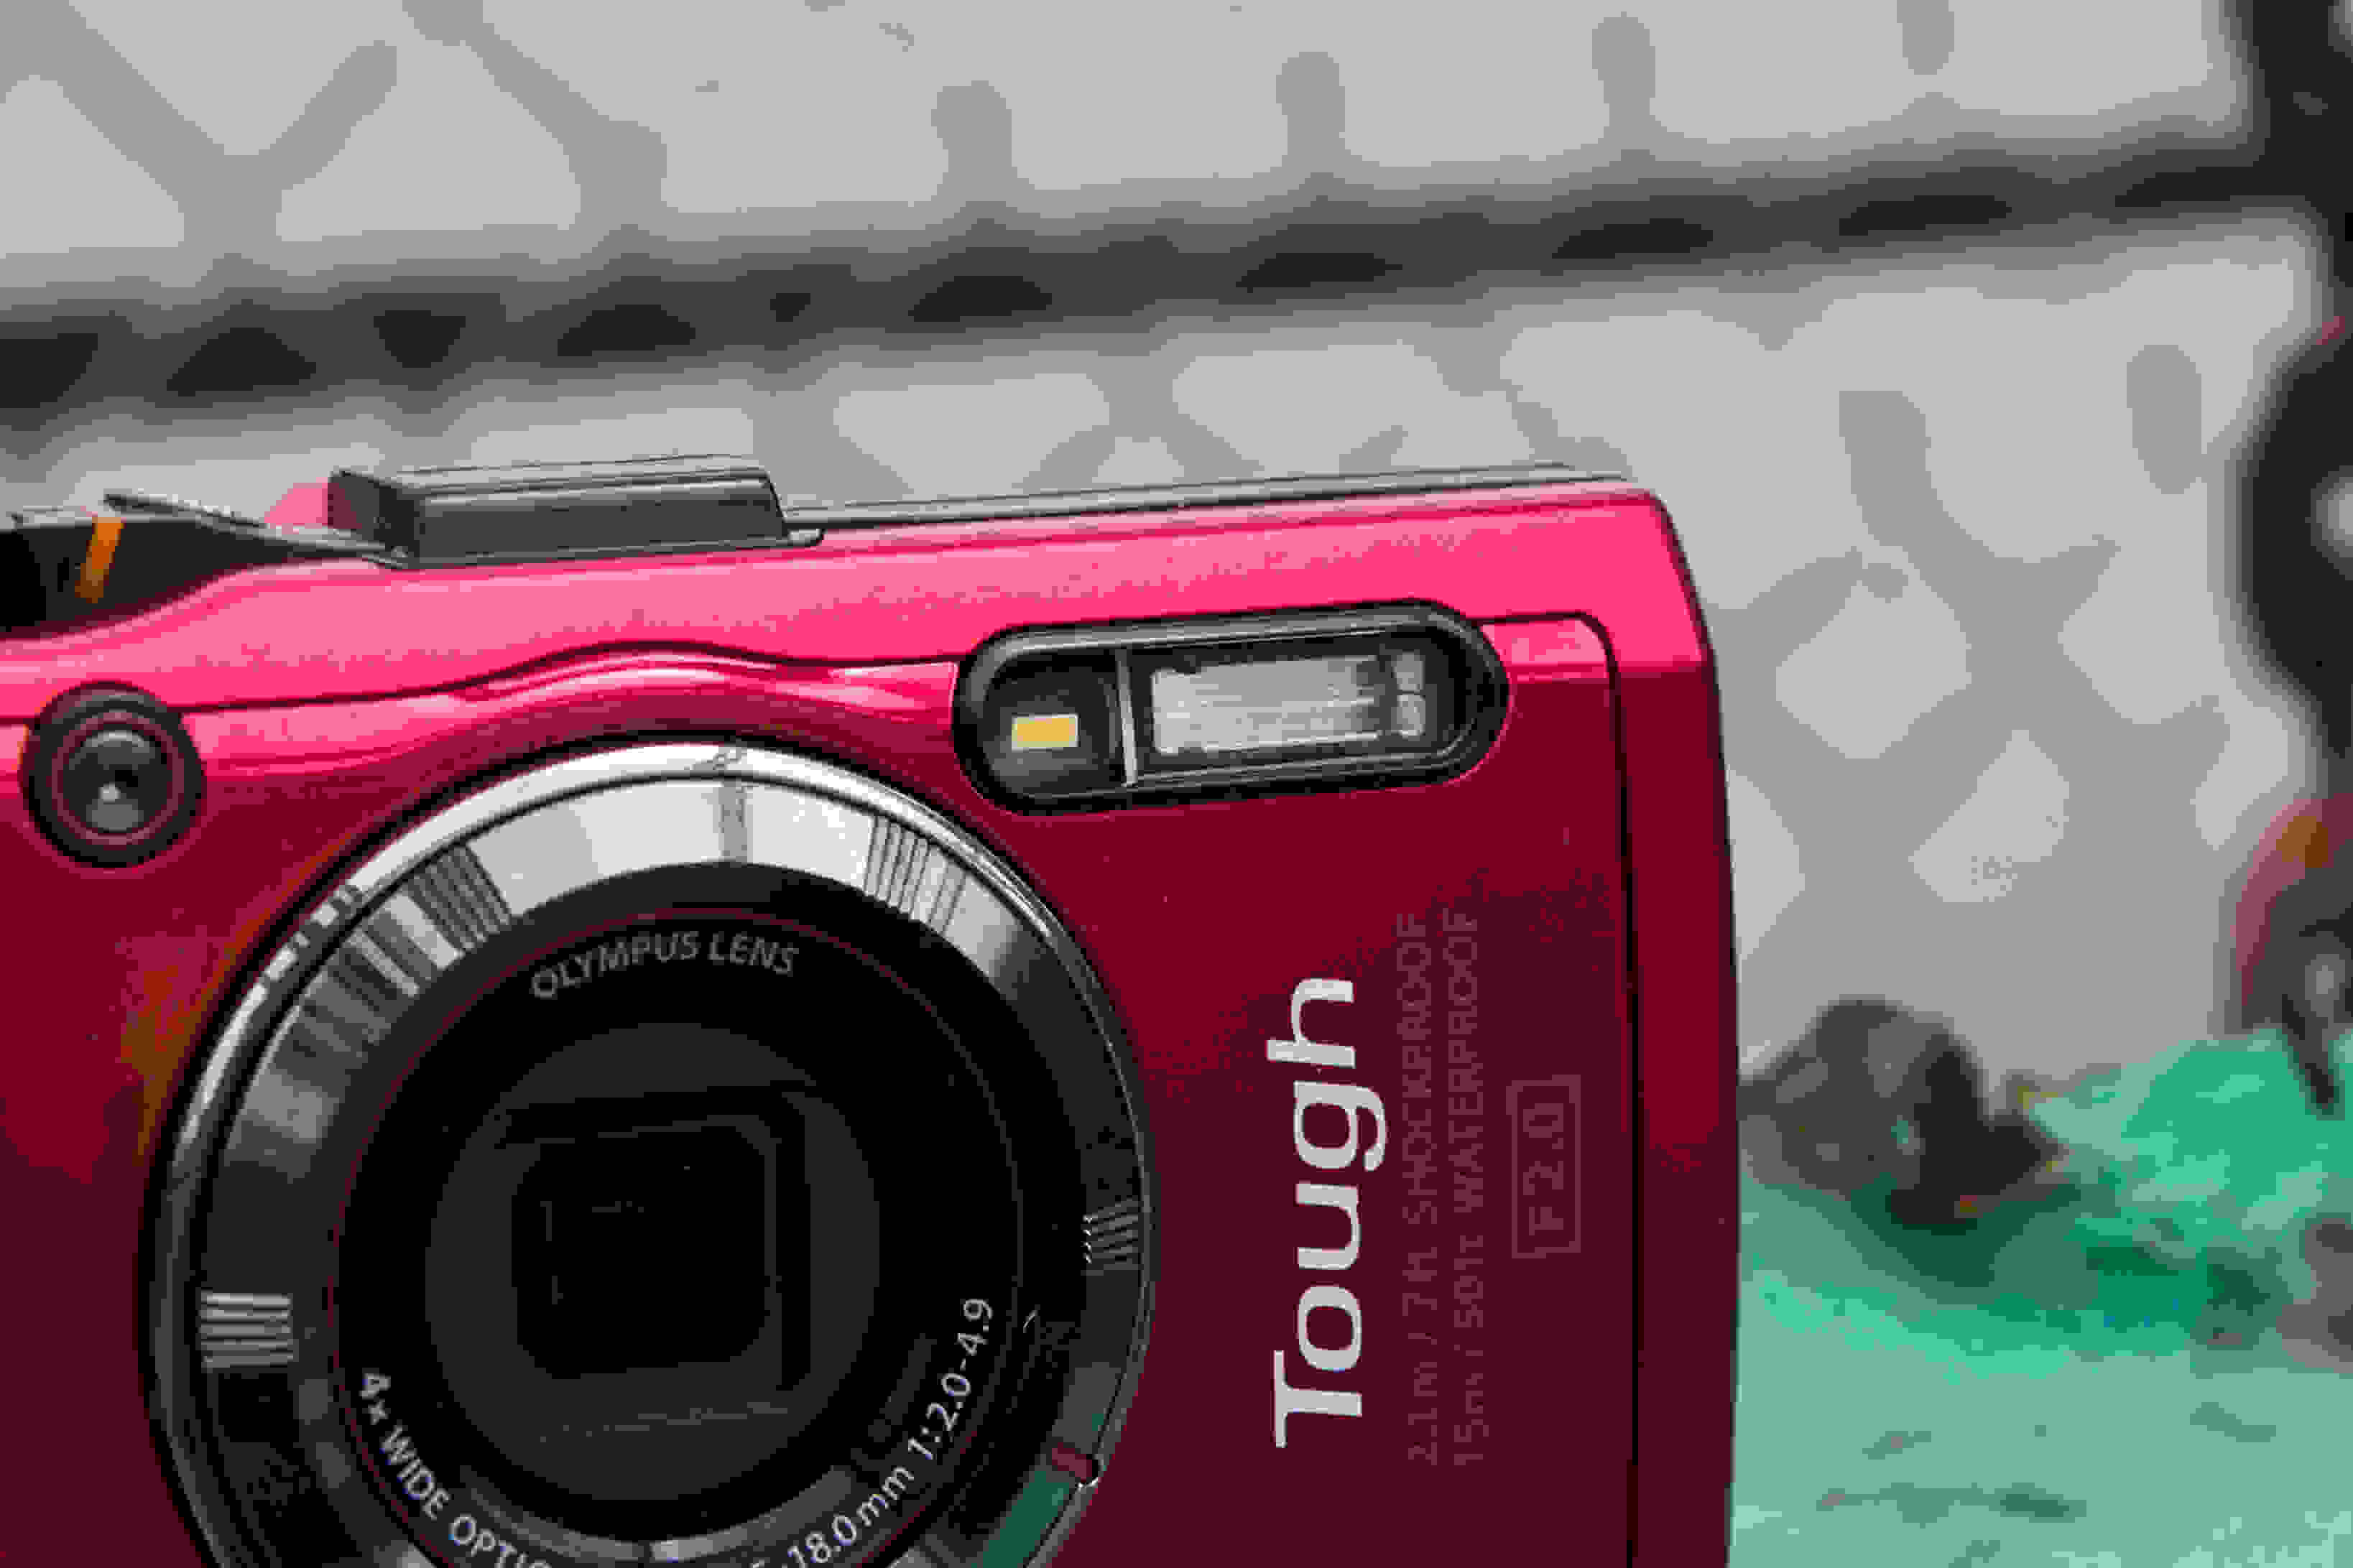 A picture of the Olympus TG-3's flash.